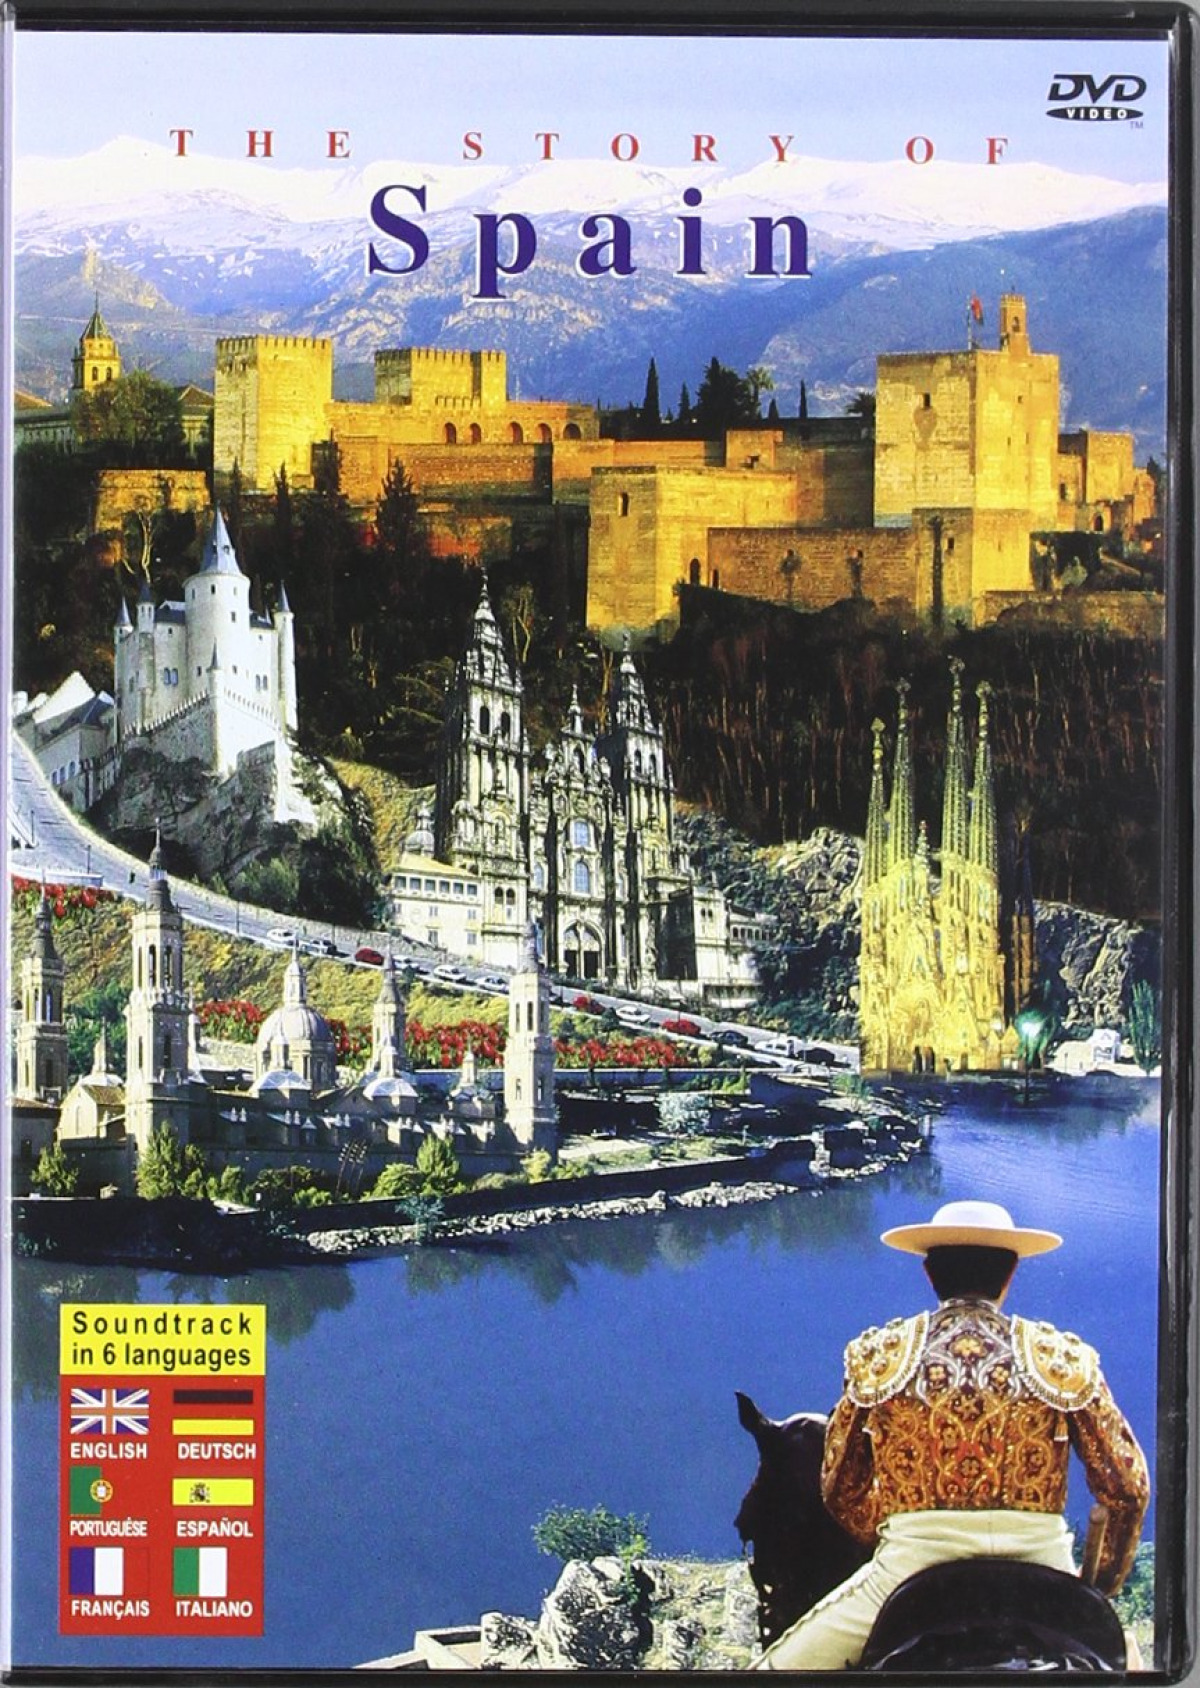 THE STORY OF SPAIN (DVD).